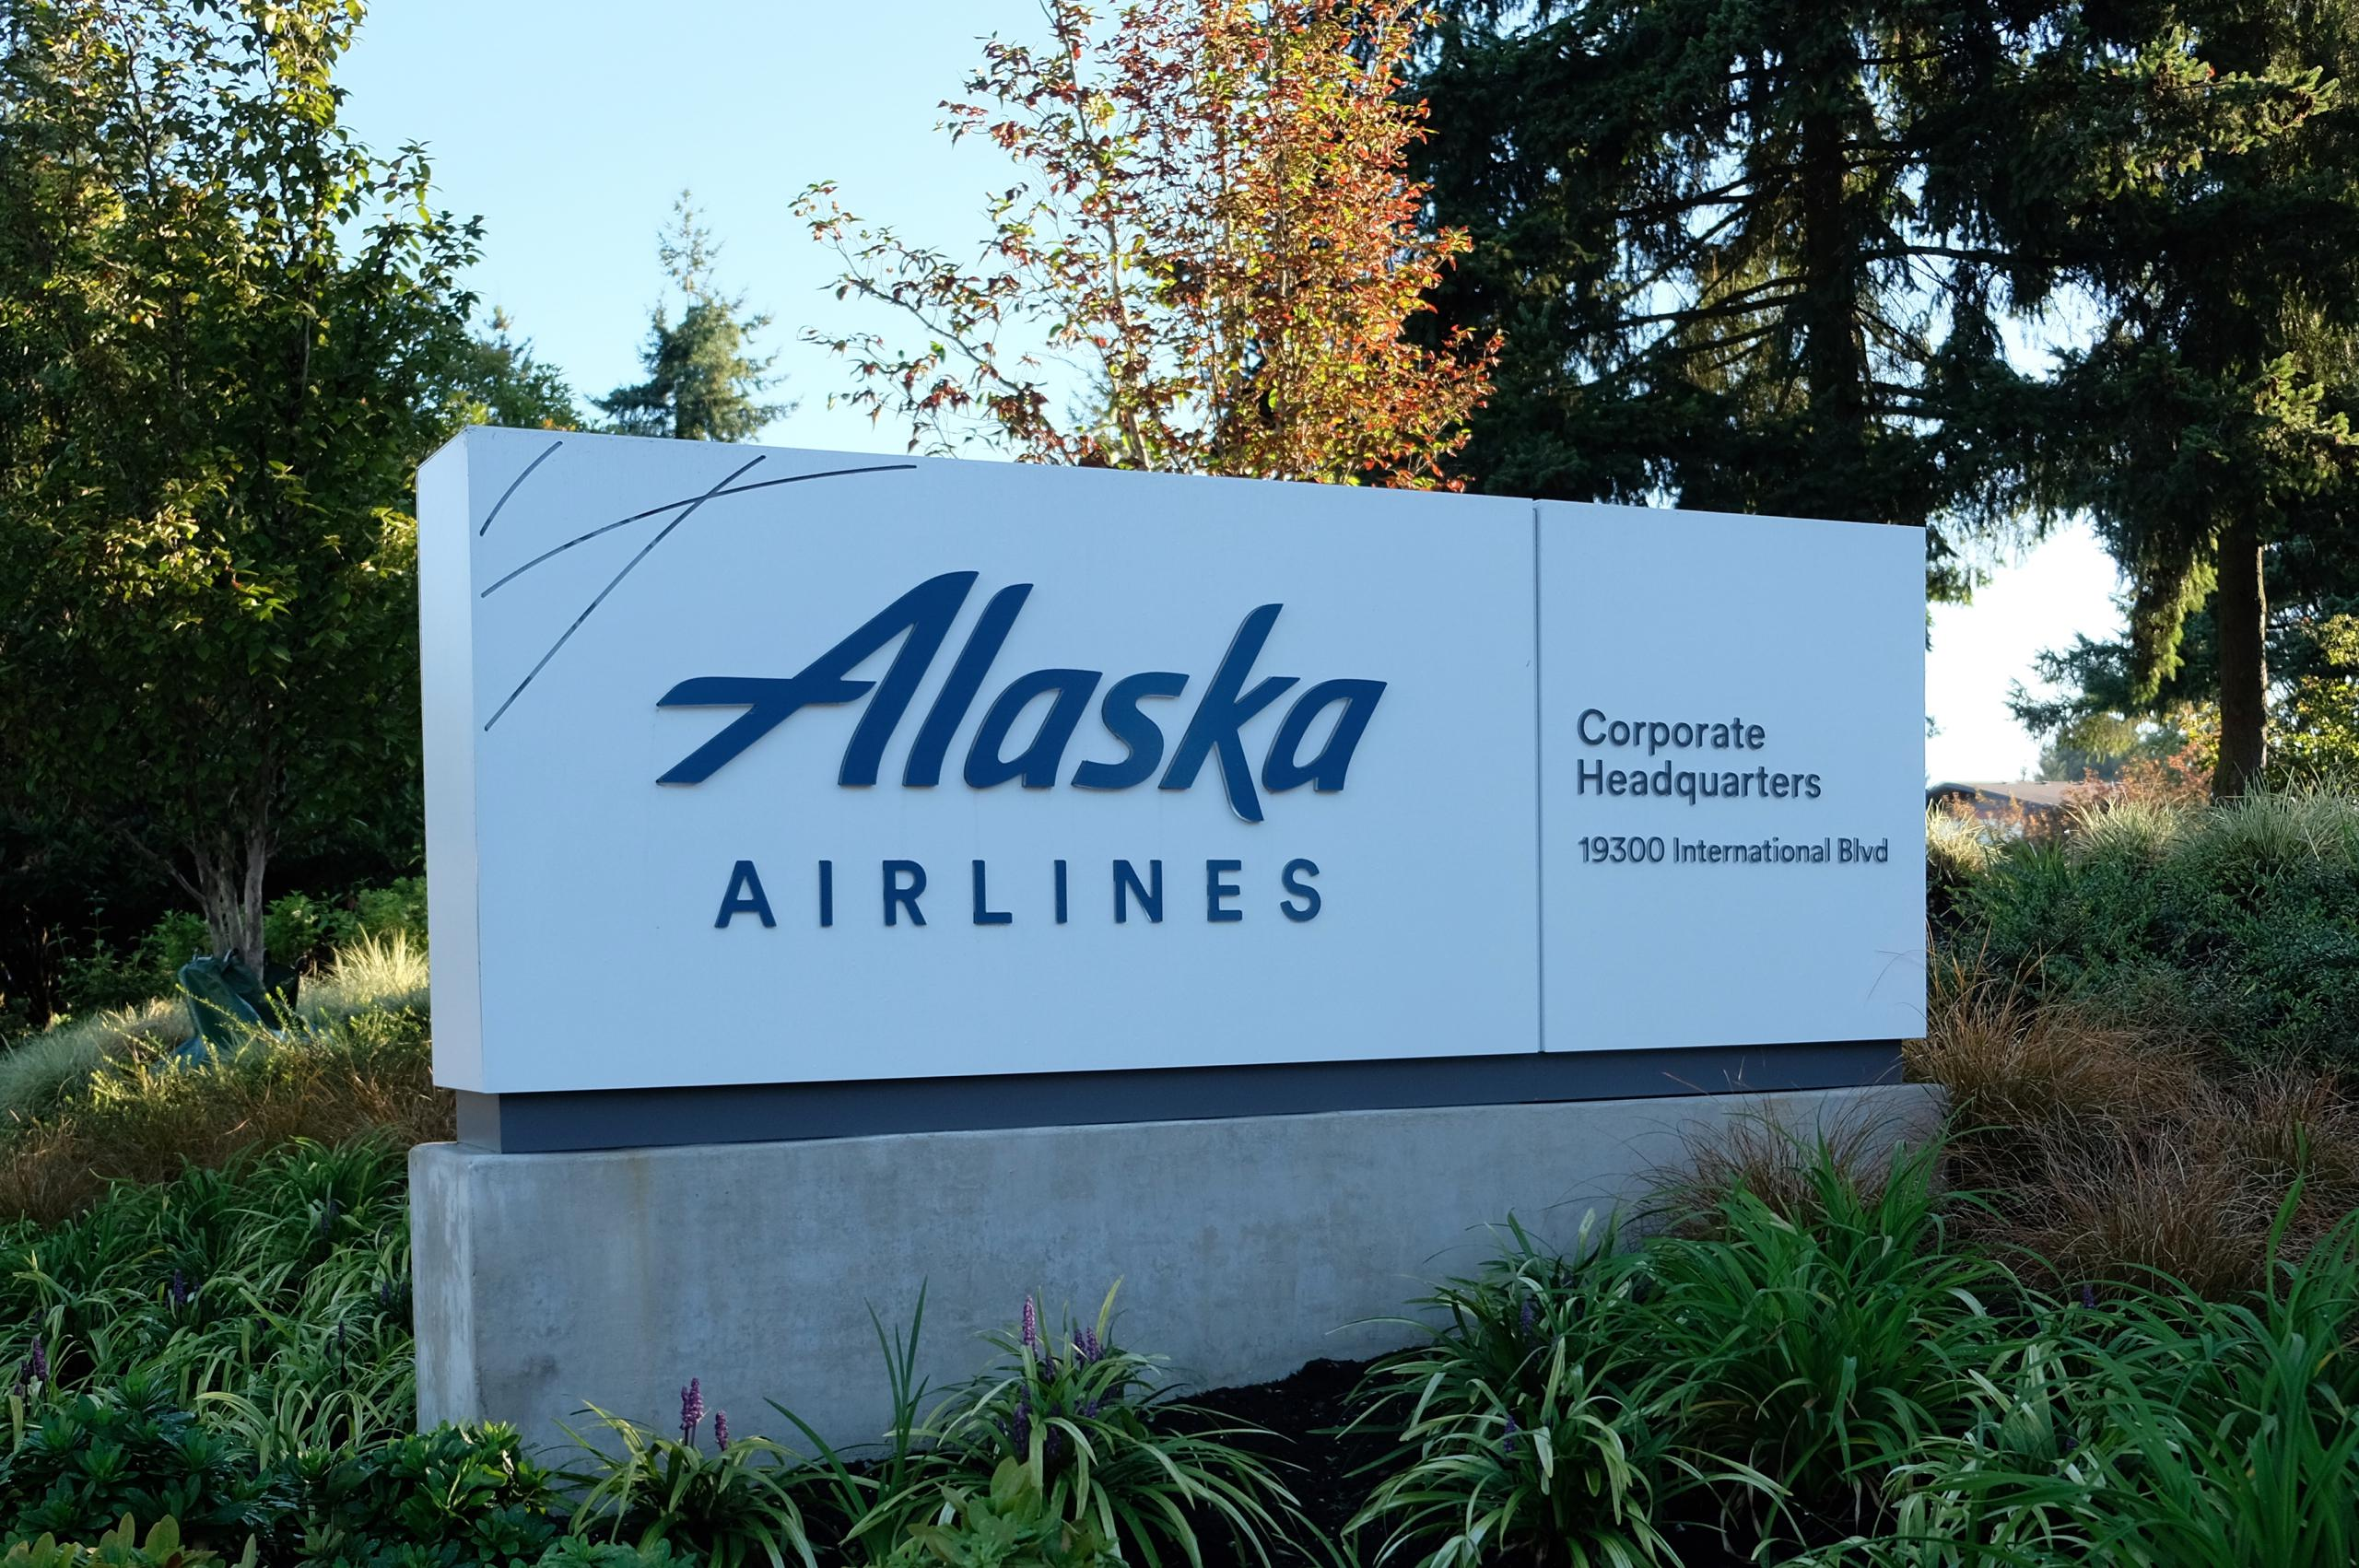 Entrance to Alaska Airlines' corporate headquarters in Seattle, Washington.